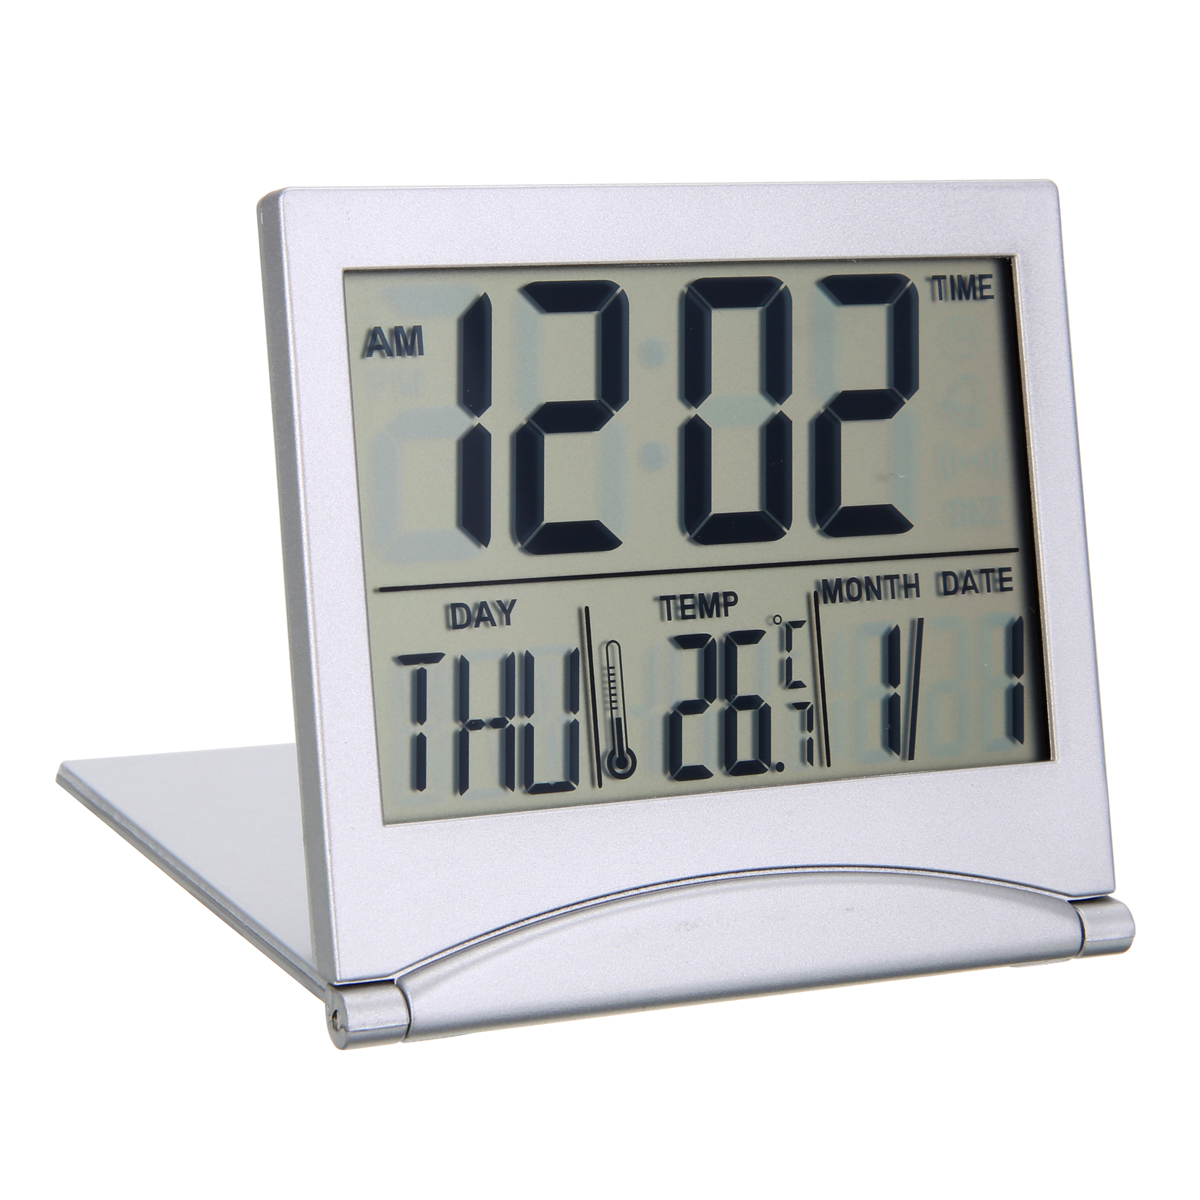 Small Folding LCD Desk Clock Plastic Digital Alarm Clock With Snooze Functions Weather Station For Travel Student Bedside Clock